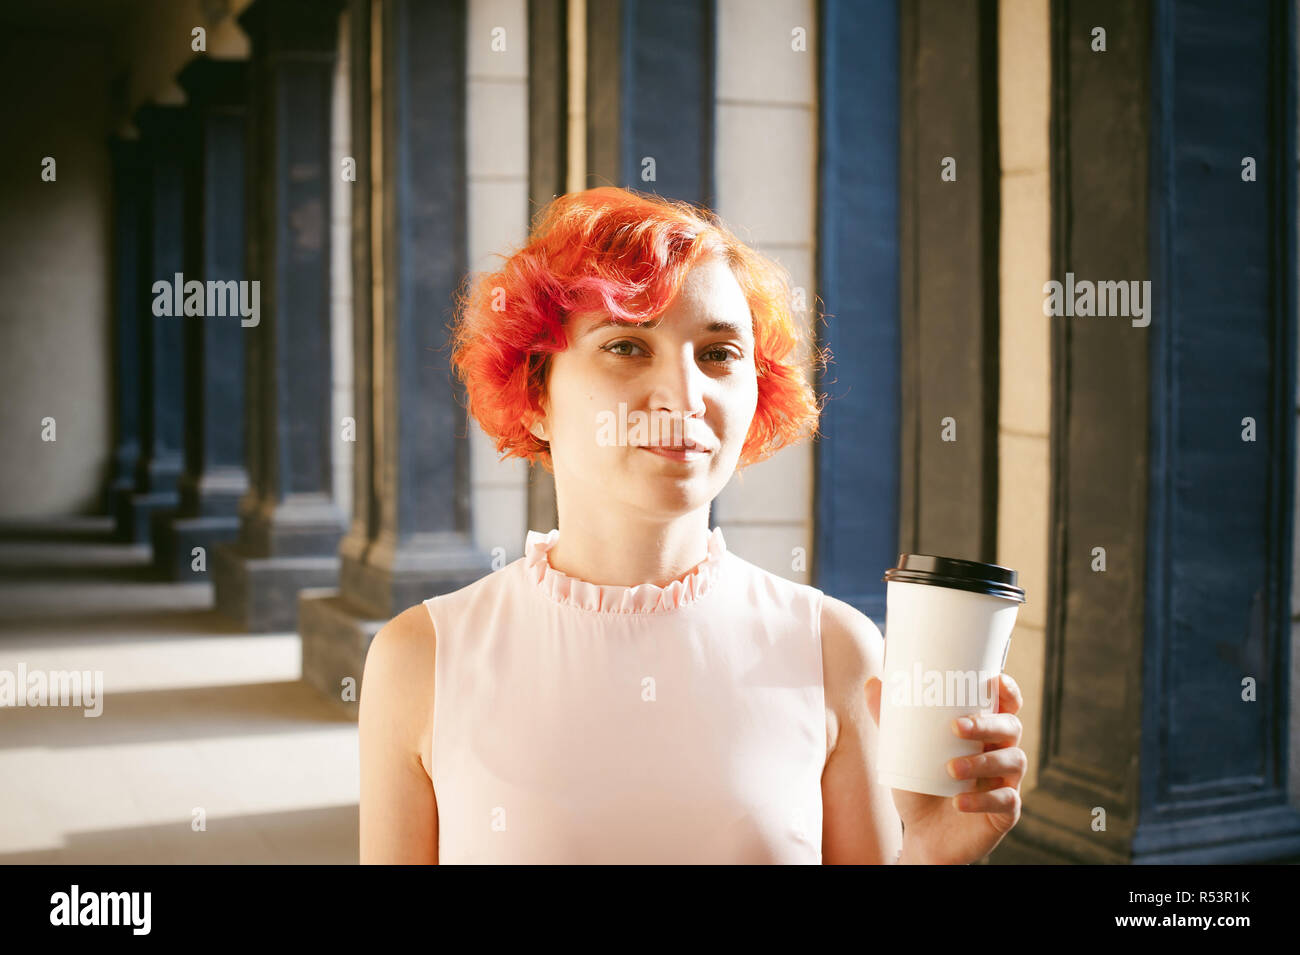 455ac152c3e23 girl in a pale pink dress with dyed red hair, a white backpack in hand,  drinks coffee from a cup, walking between light and shadow on the columns  sunny ...